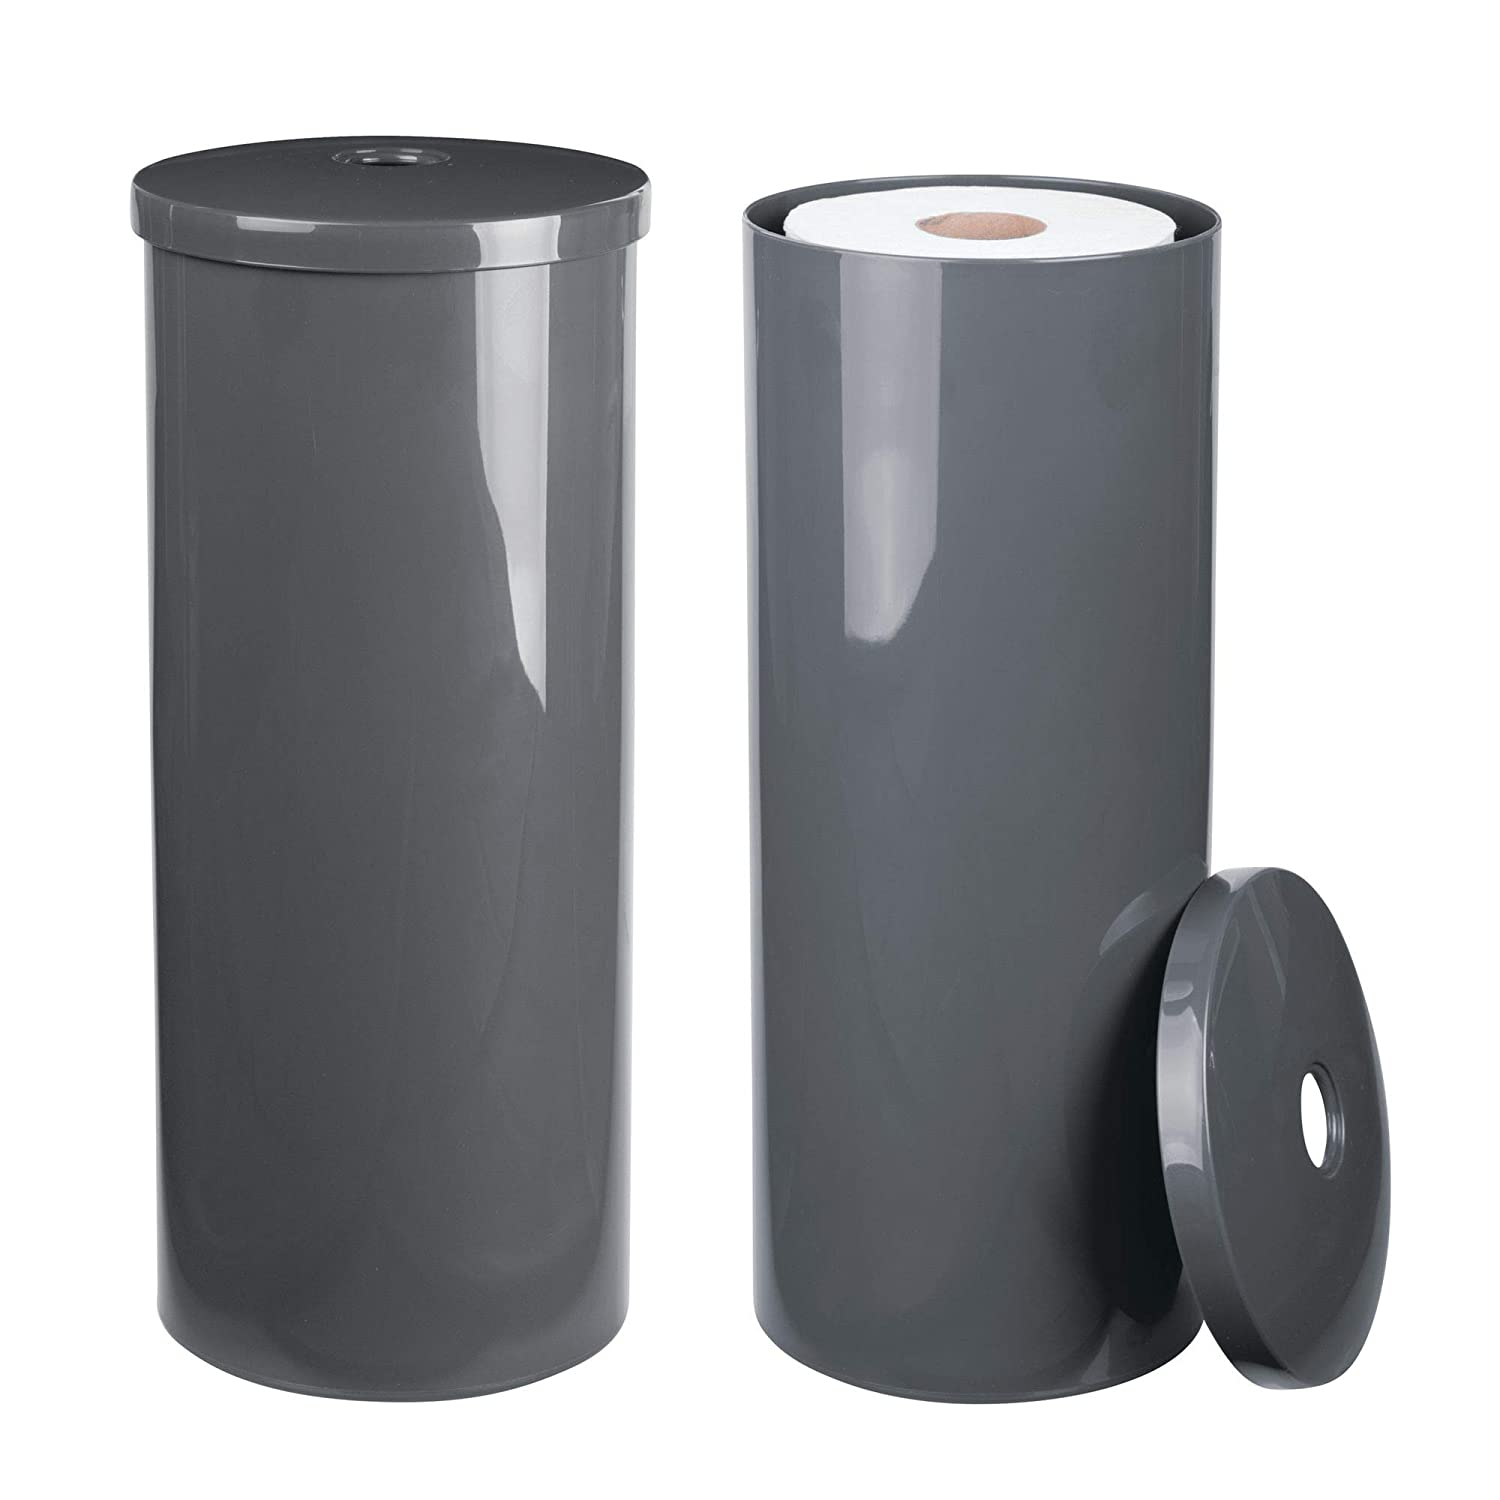 mDesign Modern Plastic Toilet Tissue Paper Roll Holder Canister Stand with Lid - Vertical Bathroom Storage for 3 Rolls of Toilet Tissue - Holds Large Mega Rolls - 2 Pack, Slate Gray MetroDecor